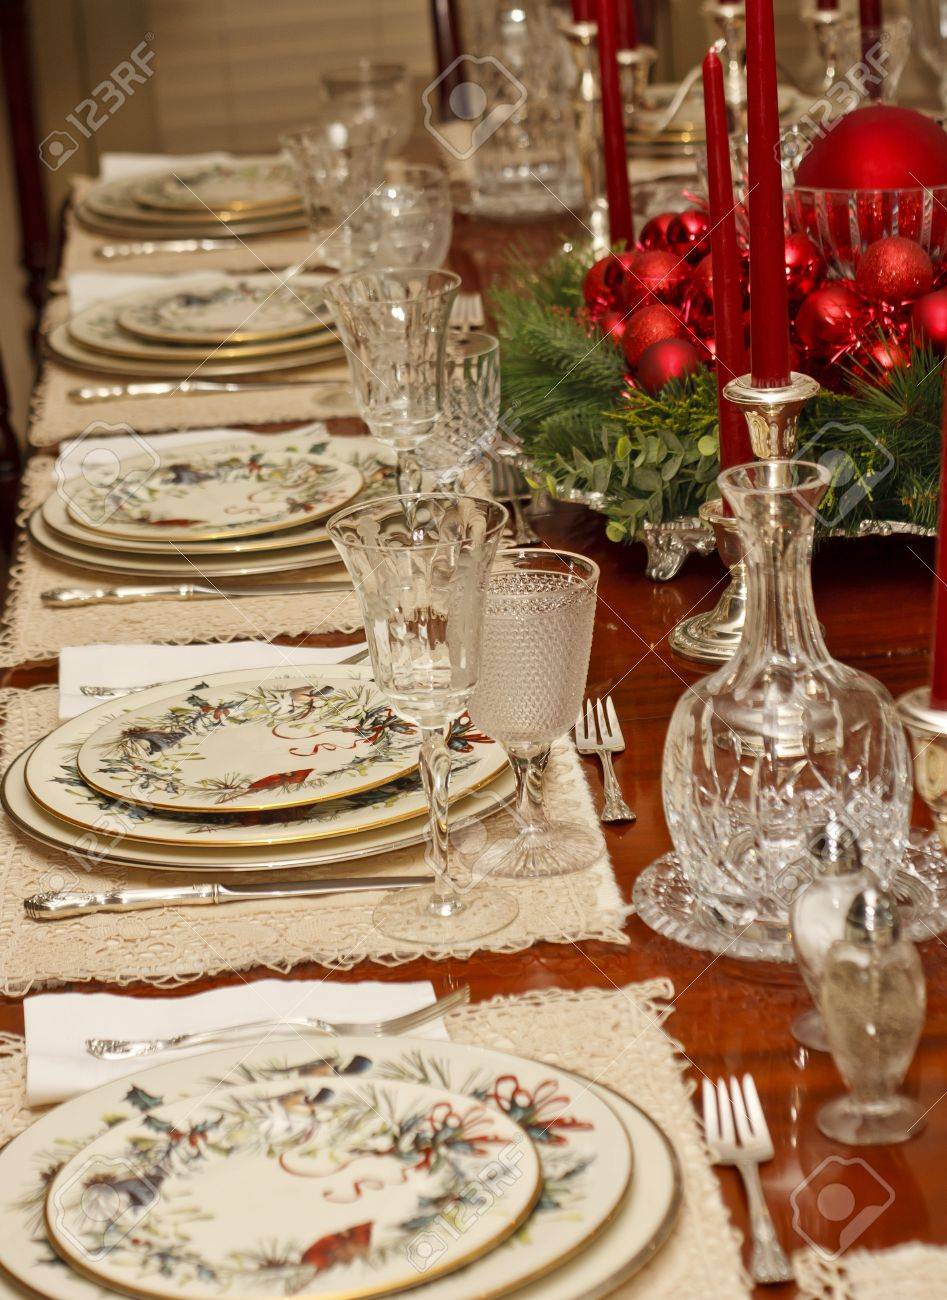 A Christmas Dining Table Set Formally Stock Photo, Picture And ...